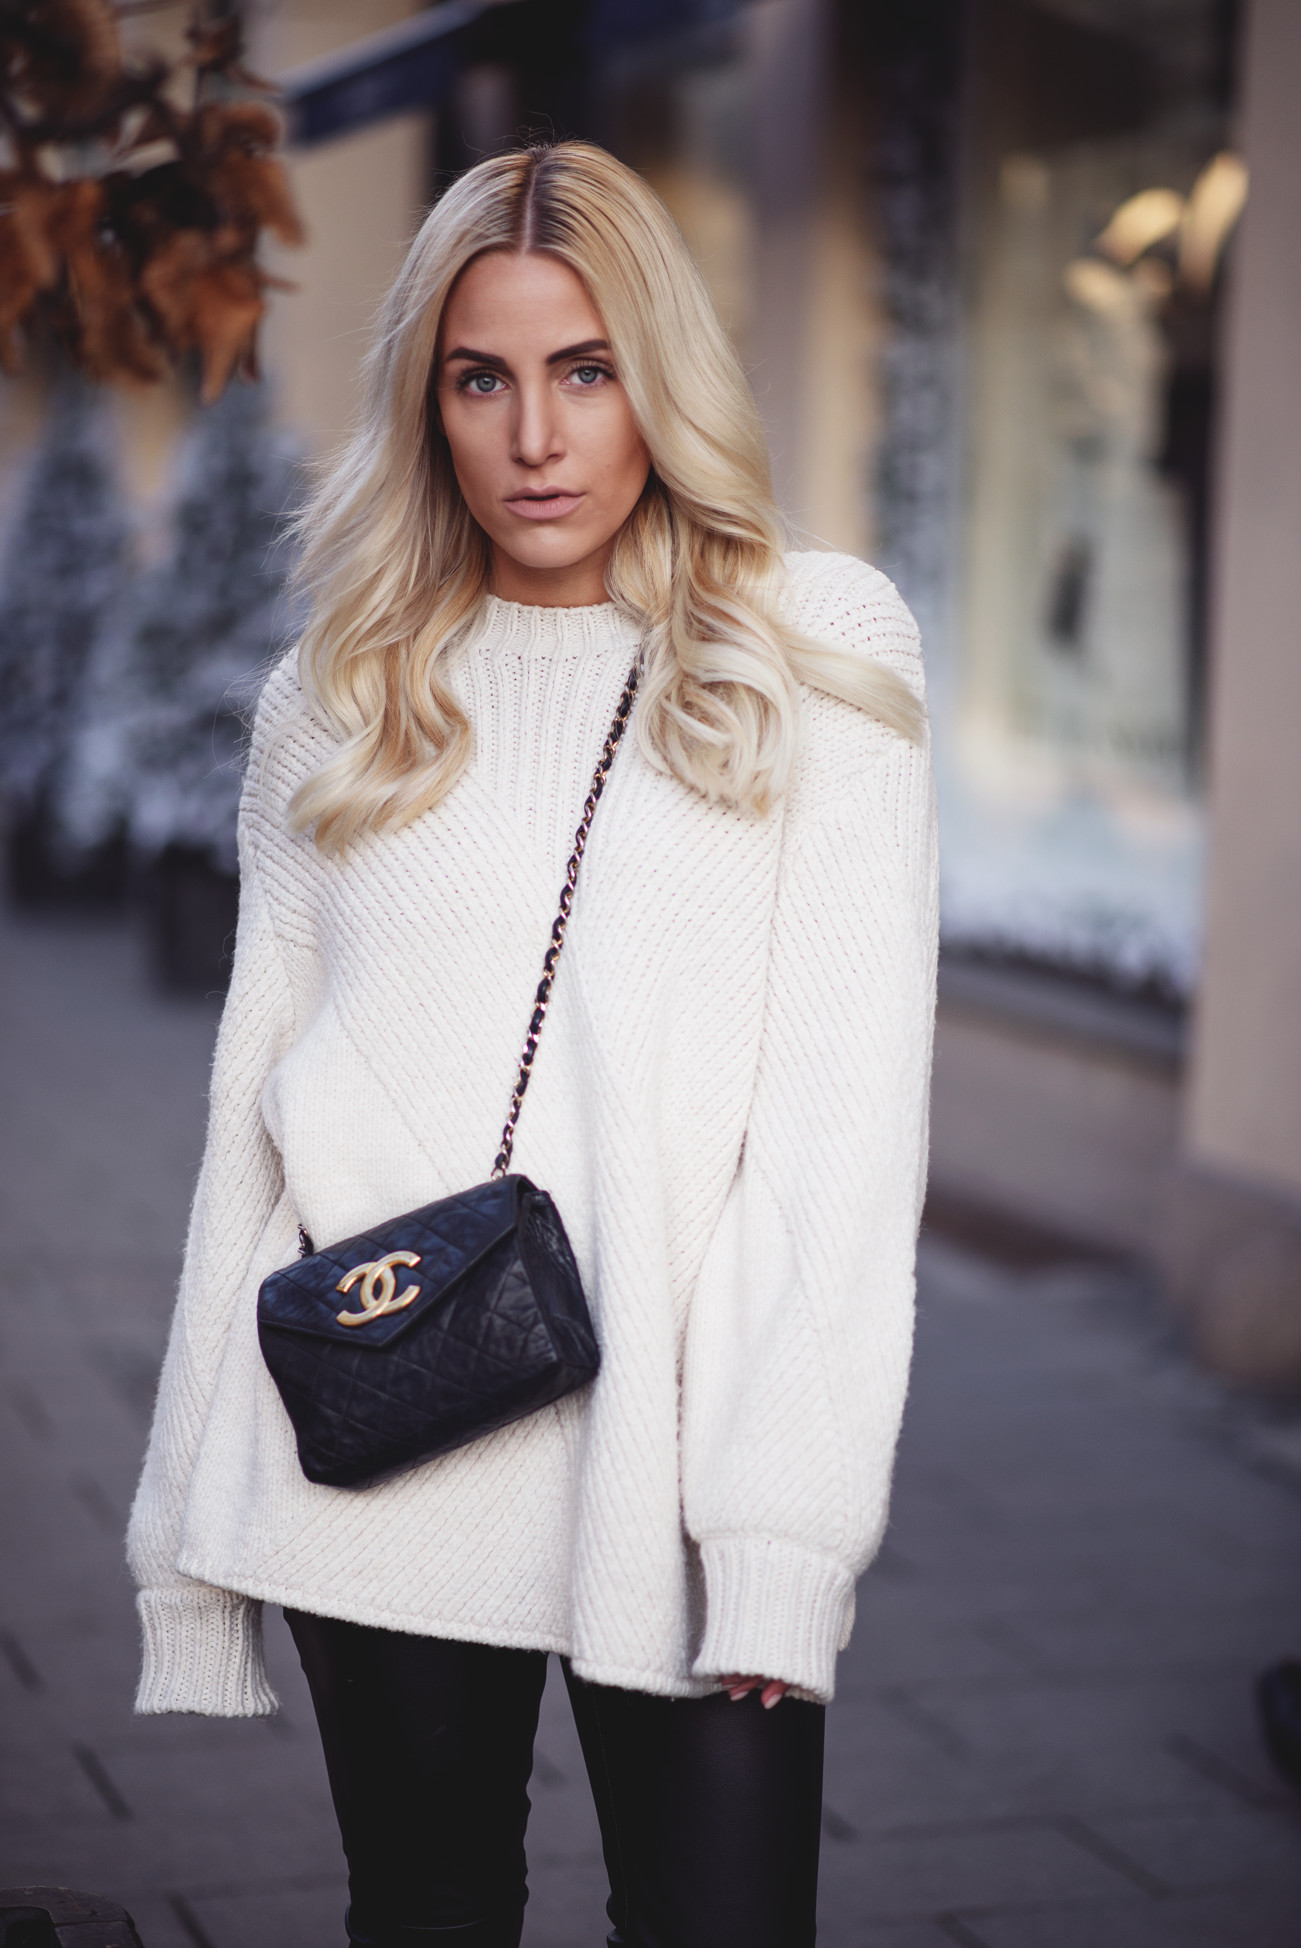 fashion-fashionblogger-blogger-chanel-winter-cozy-knitwear-leo-sequinsophia1-dsc_6281